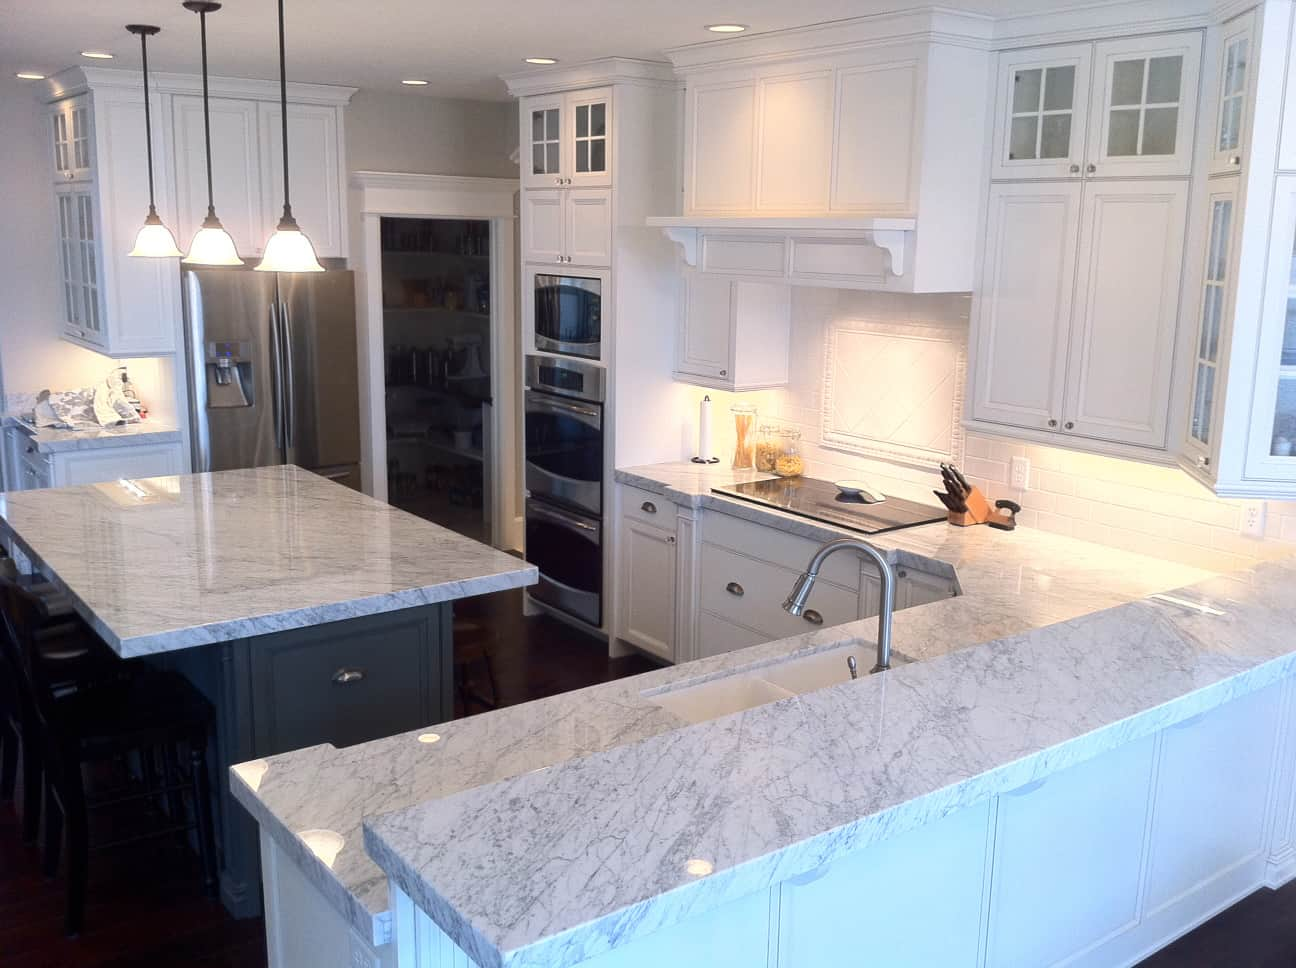 Marble is fresh, clean, and trendy. Therefore, having a marble kitchen island paired with a contrasting color such as black makes a bold yet unique contrast between the two.